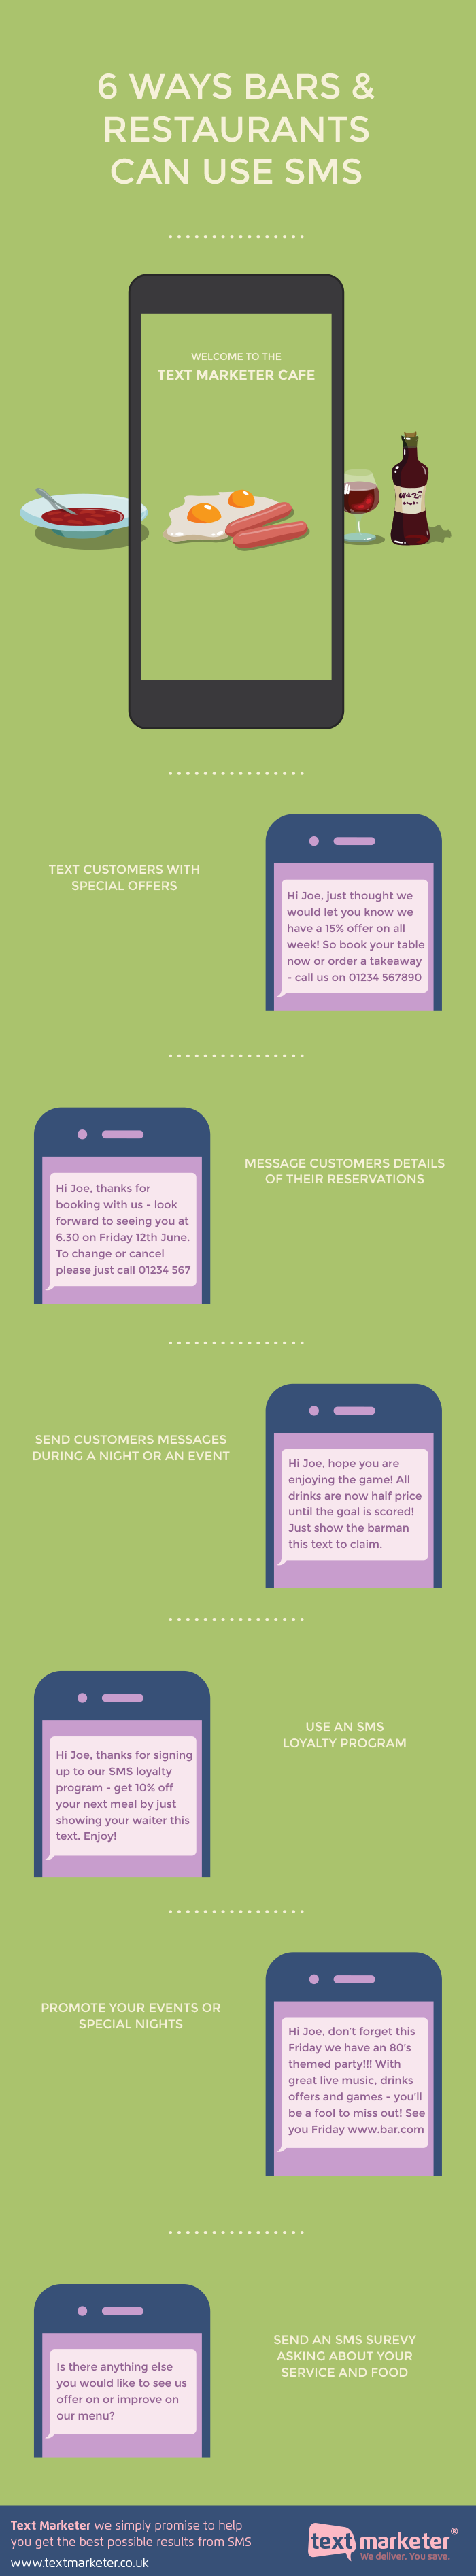 6 ways SMS can help restaurants and bars infographic